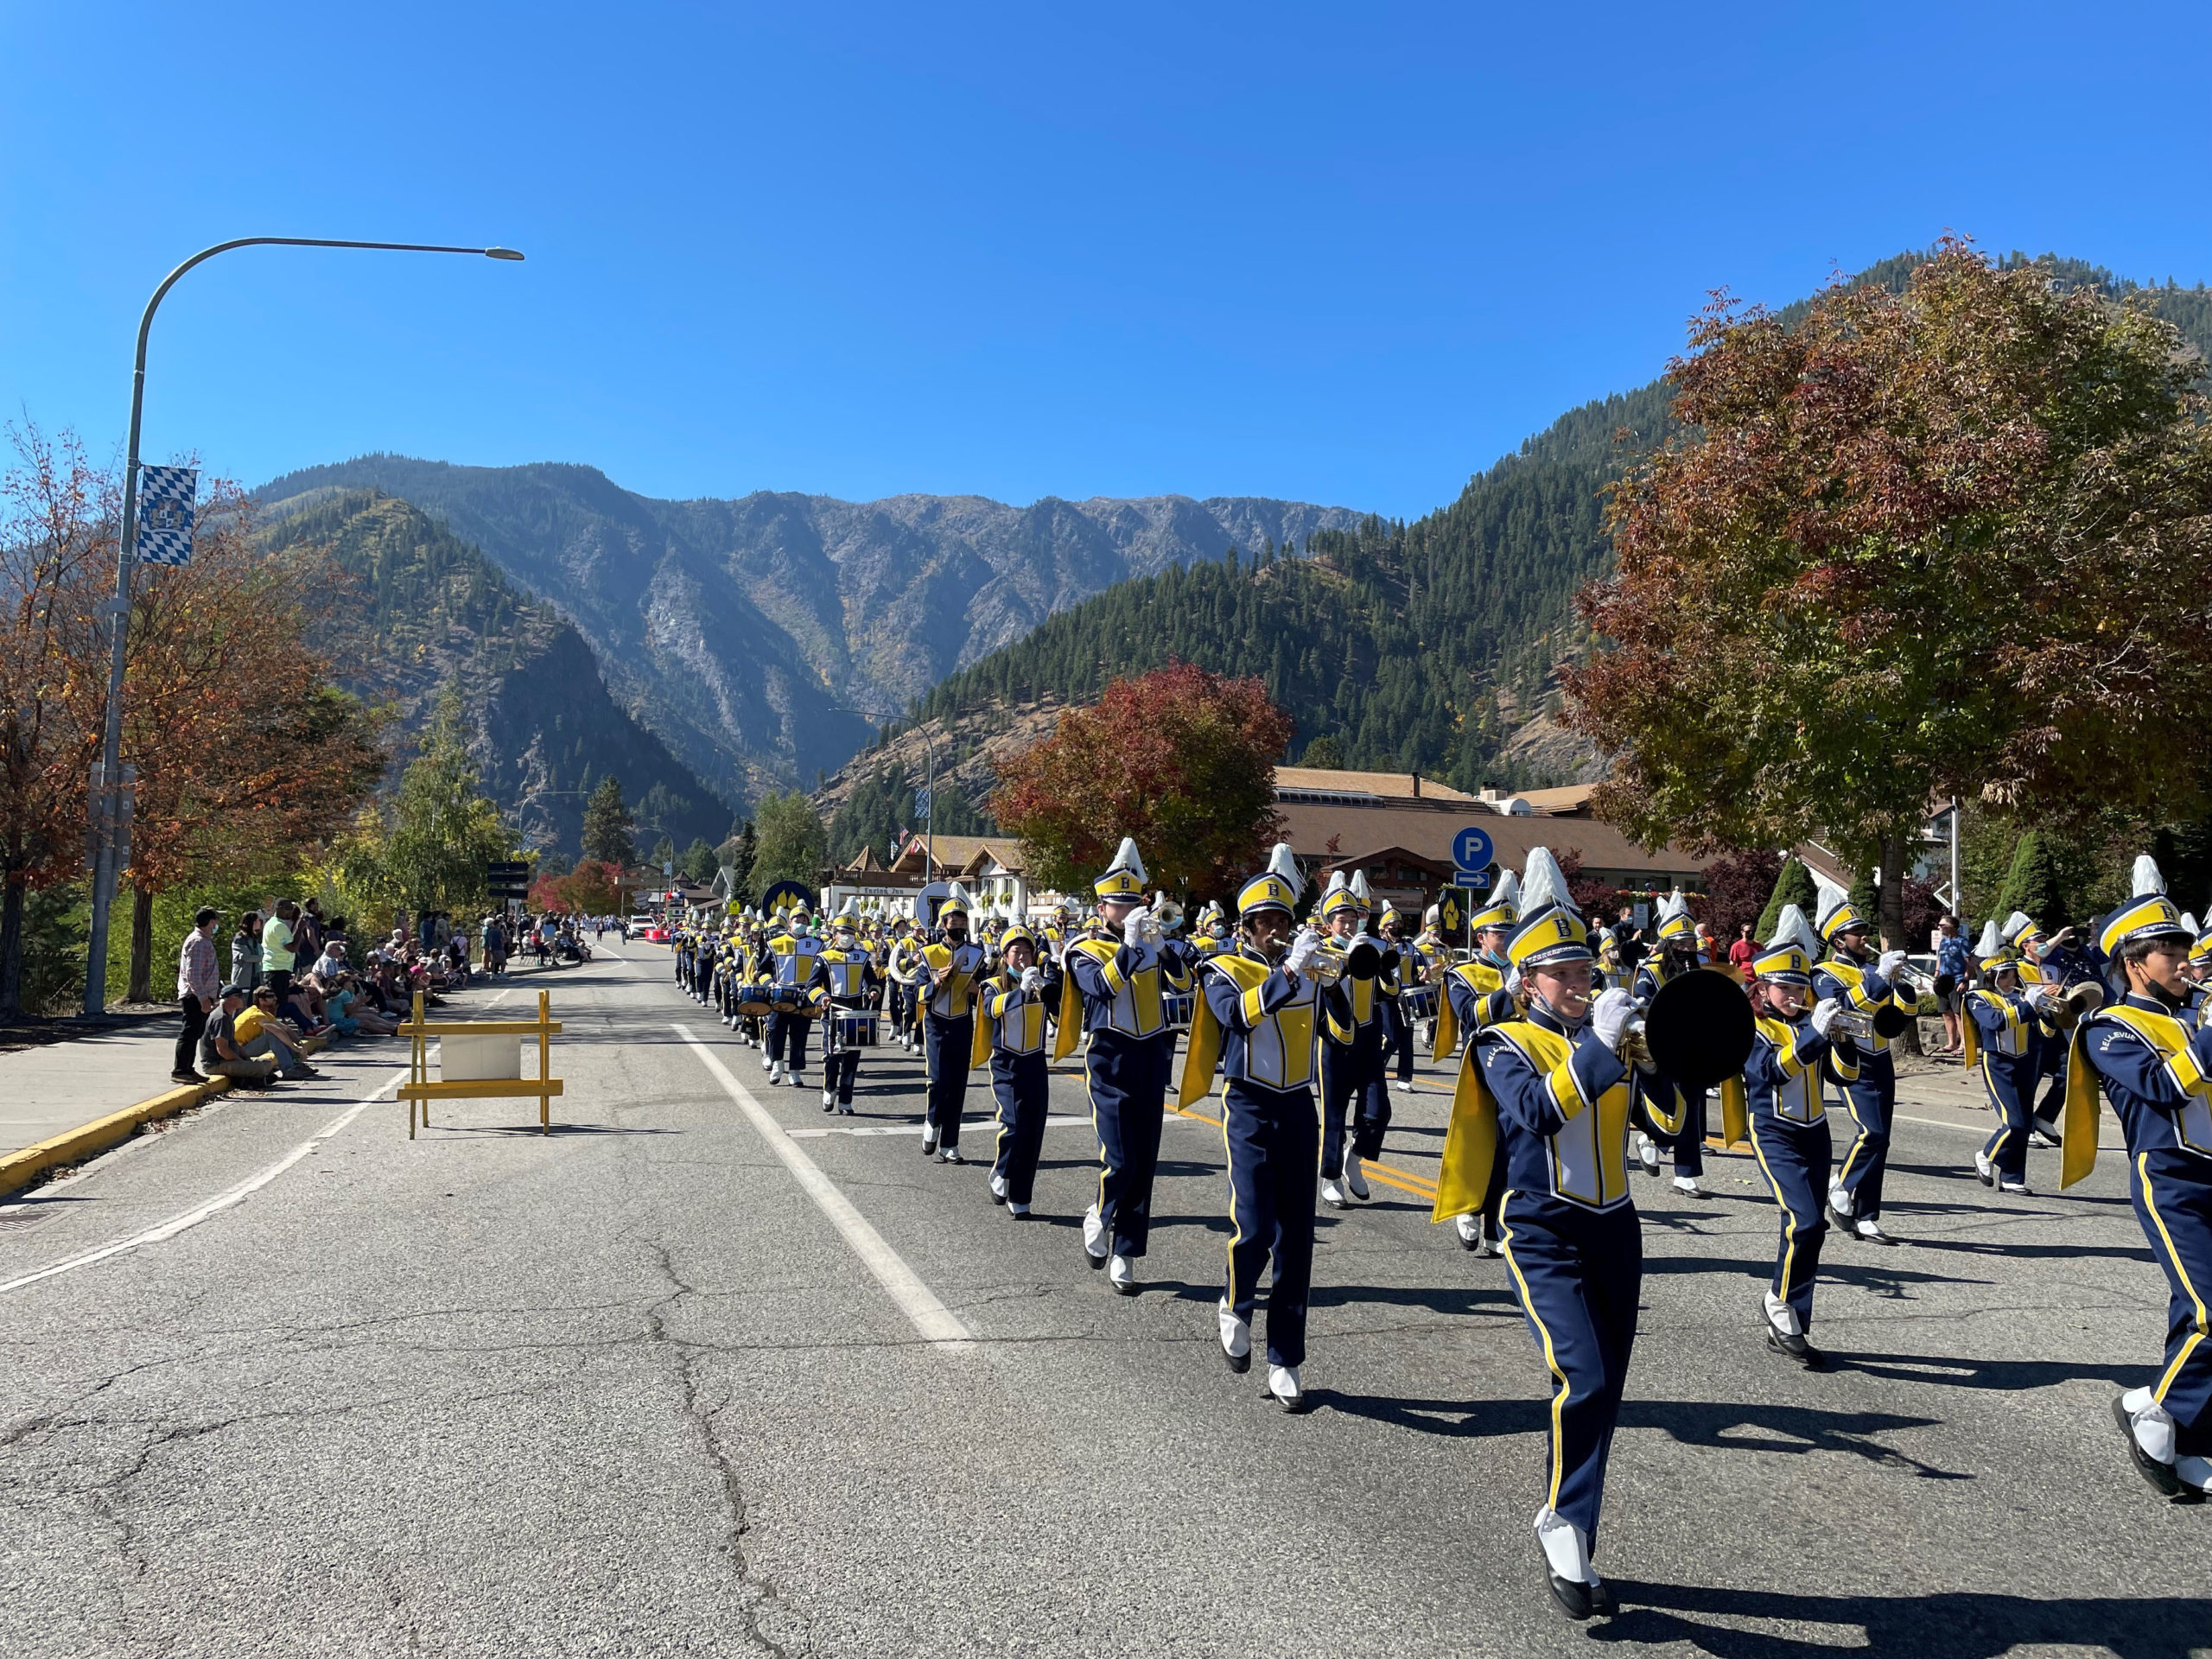 Bellevue High School Marching Band performing in parade in front of mountain